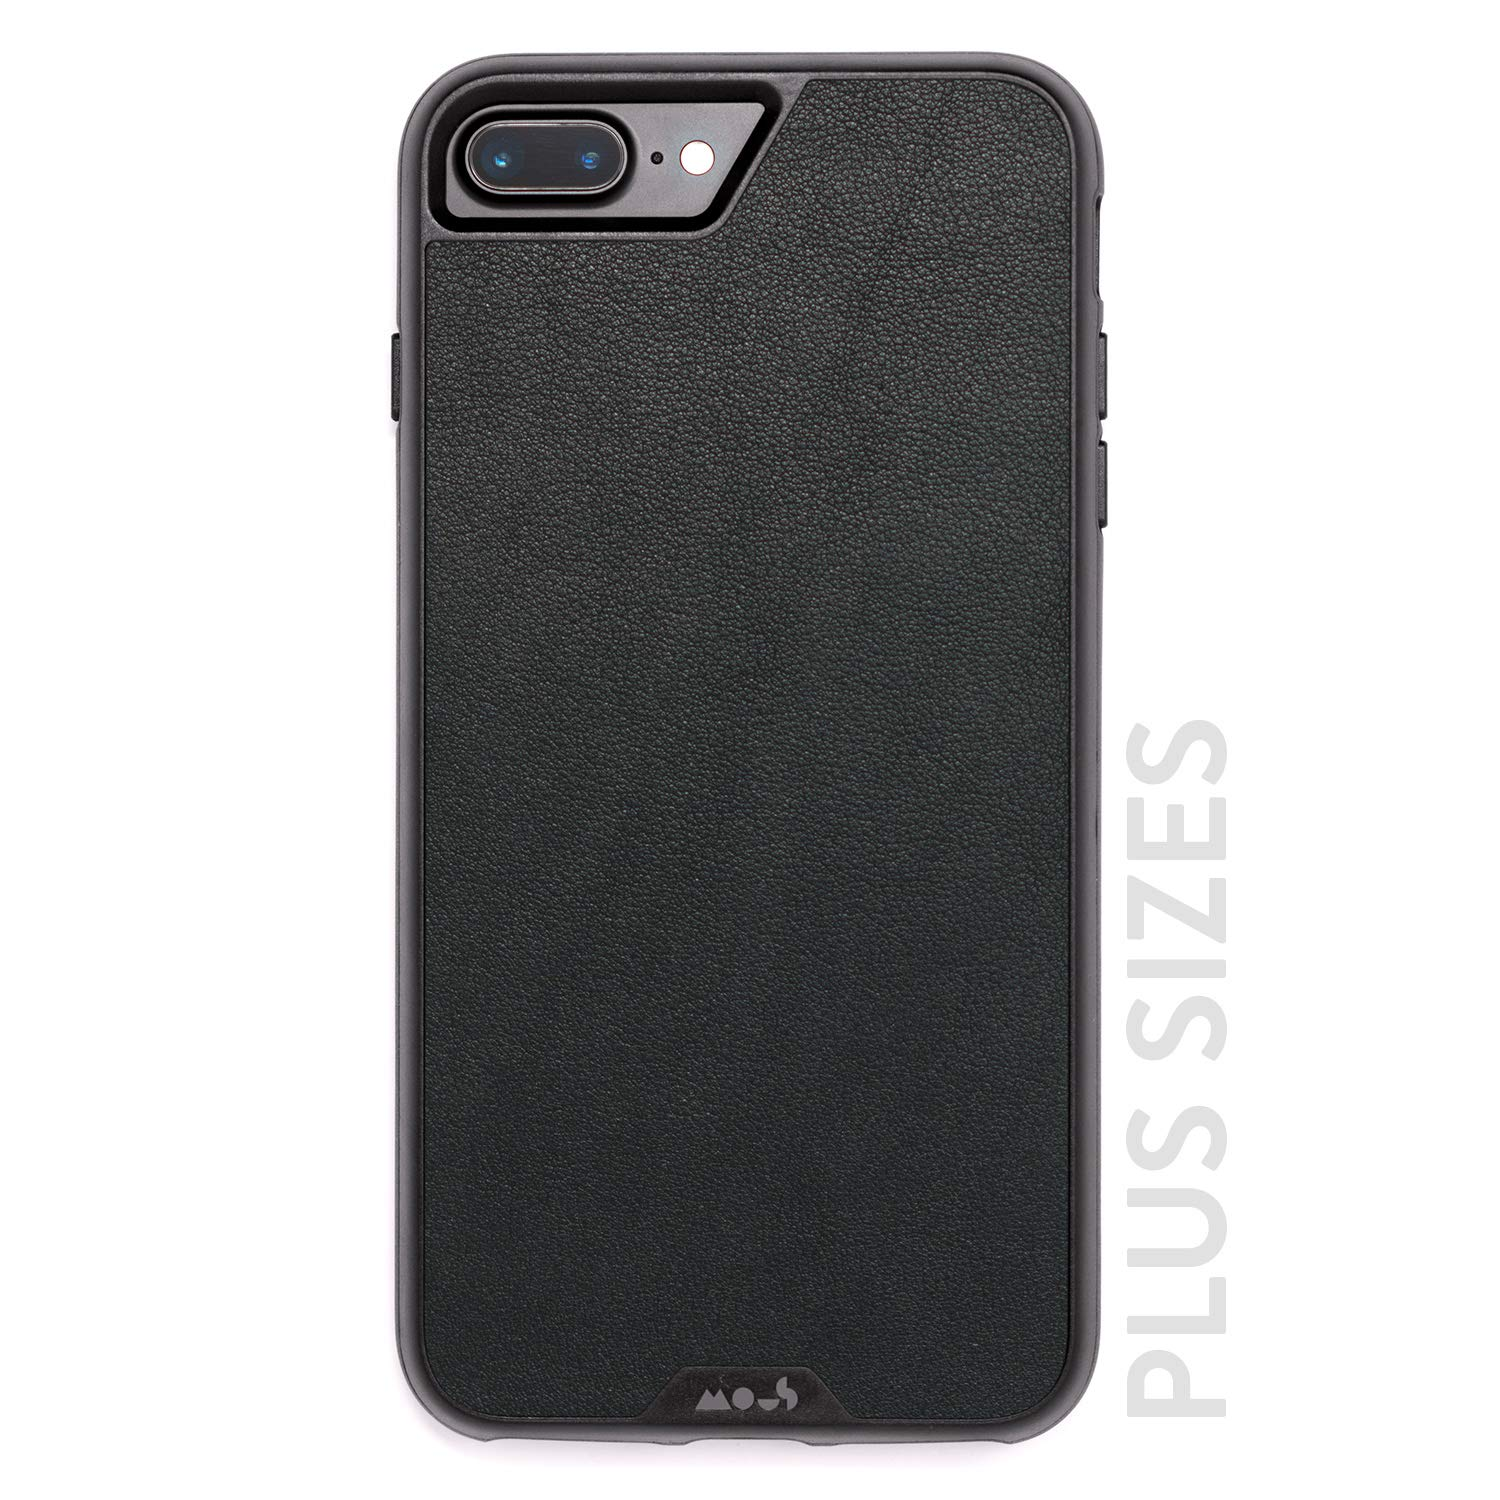 Mous Protective iPhone Case 8+/7+/6s+/6+ Plus - Black Leather - Limitless 2.0